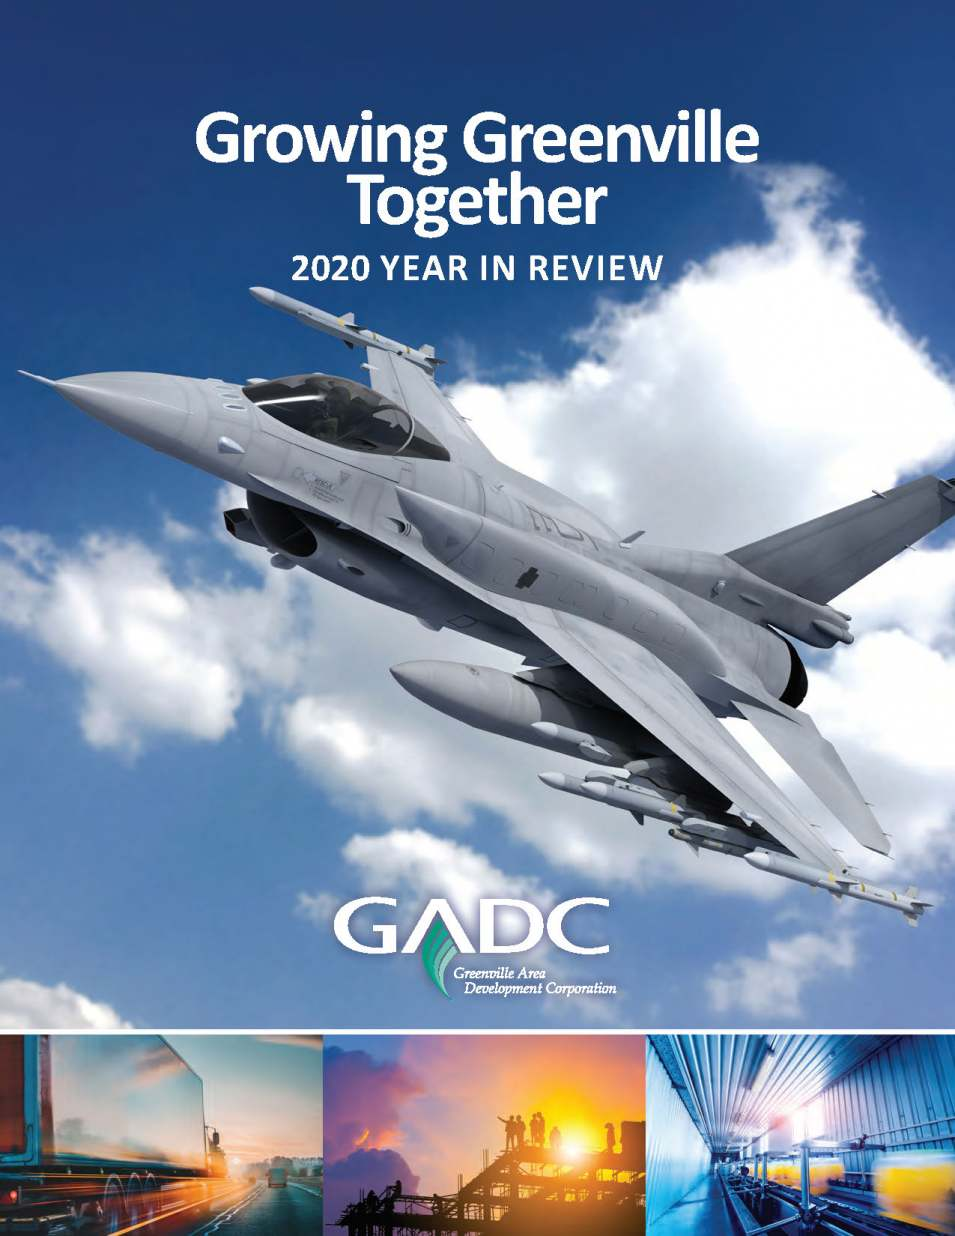 GADC 2020 Year In Review report